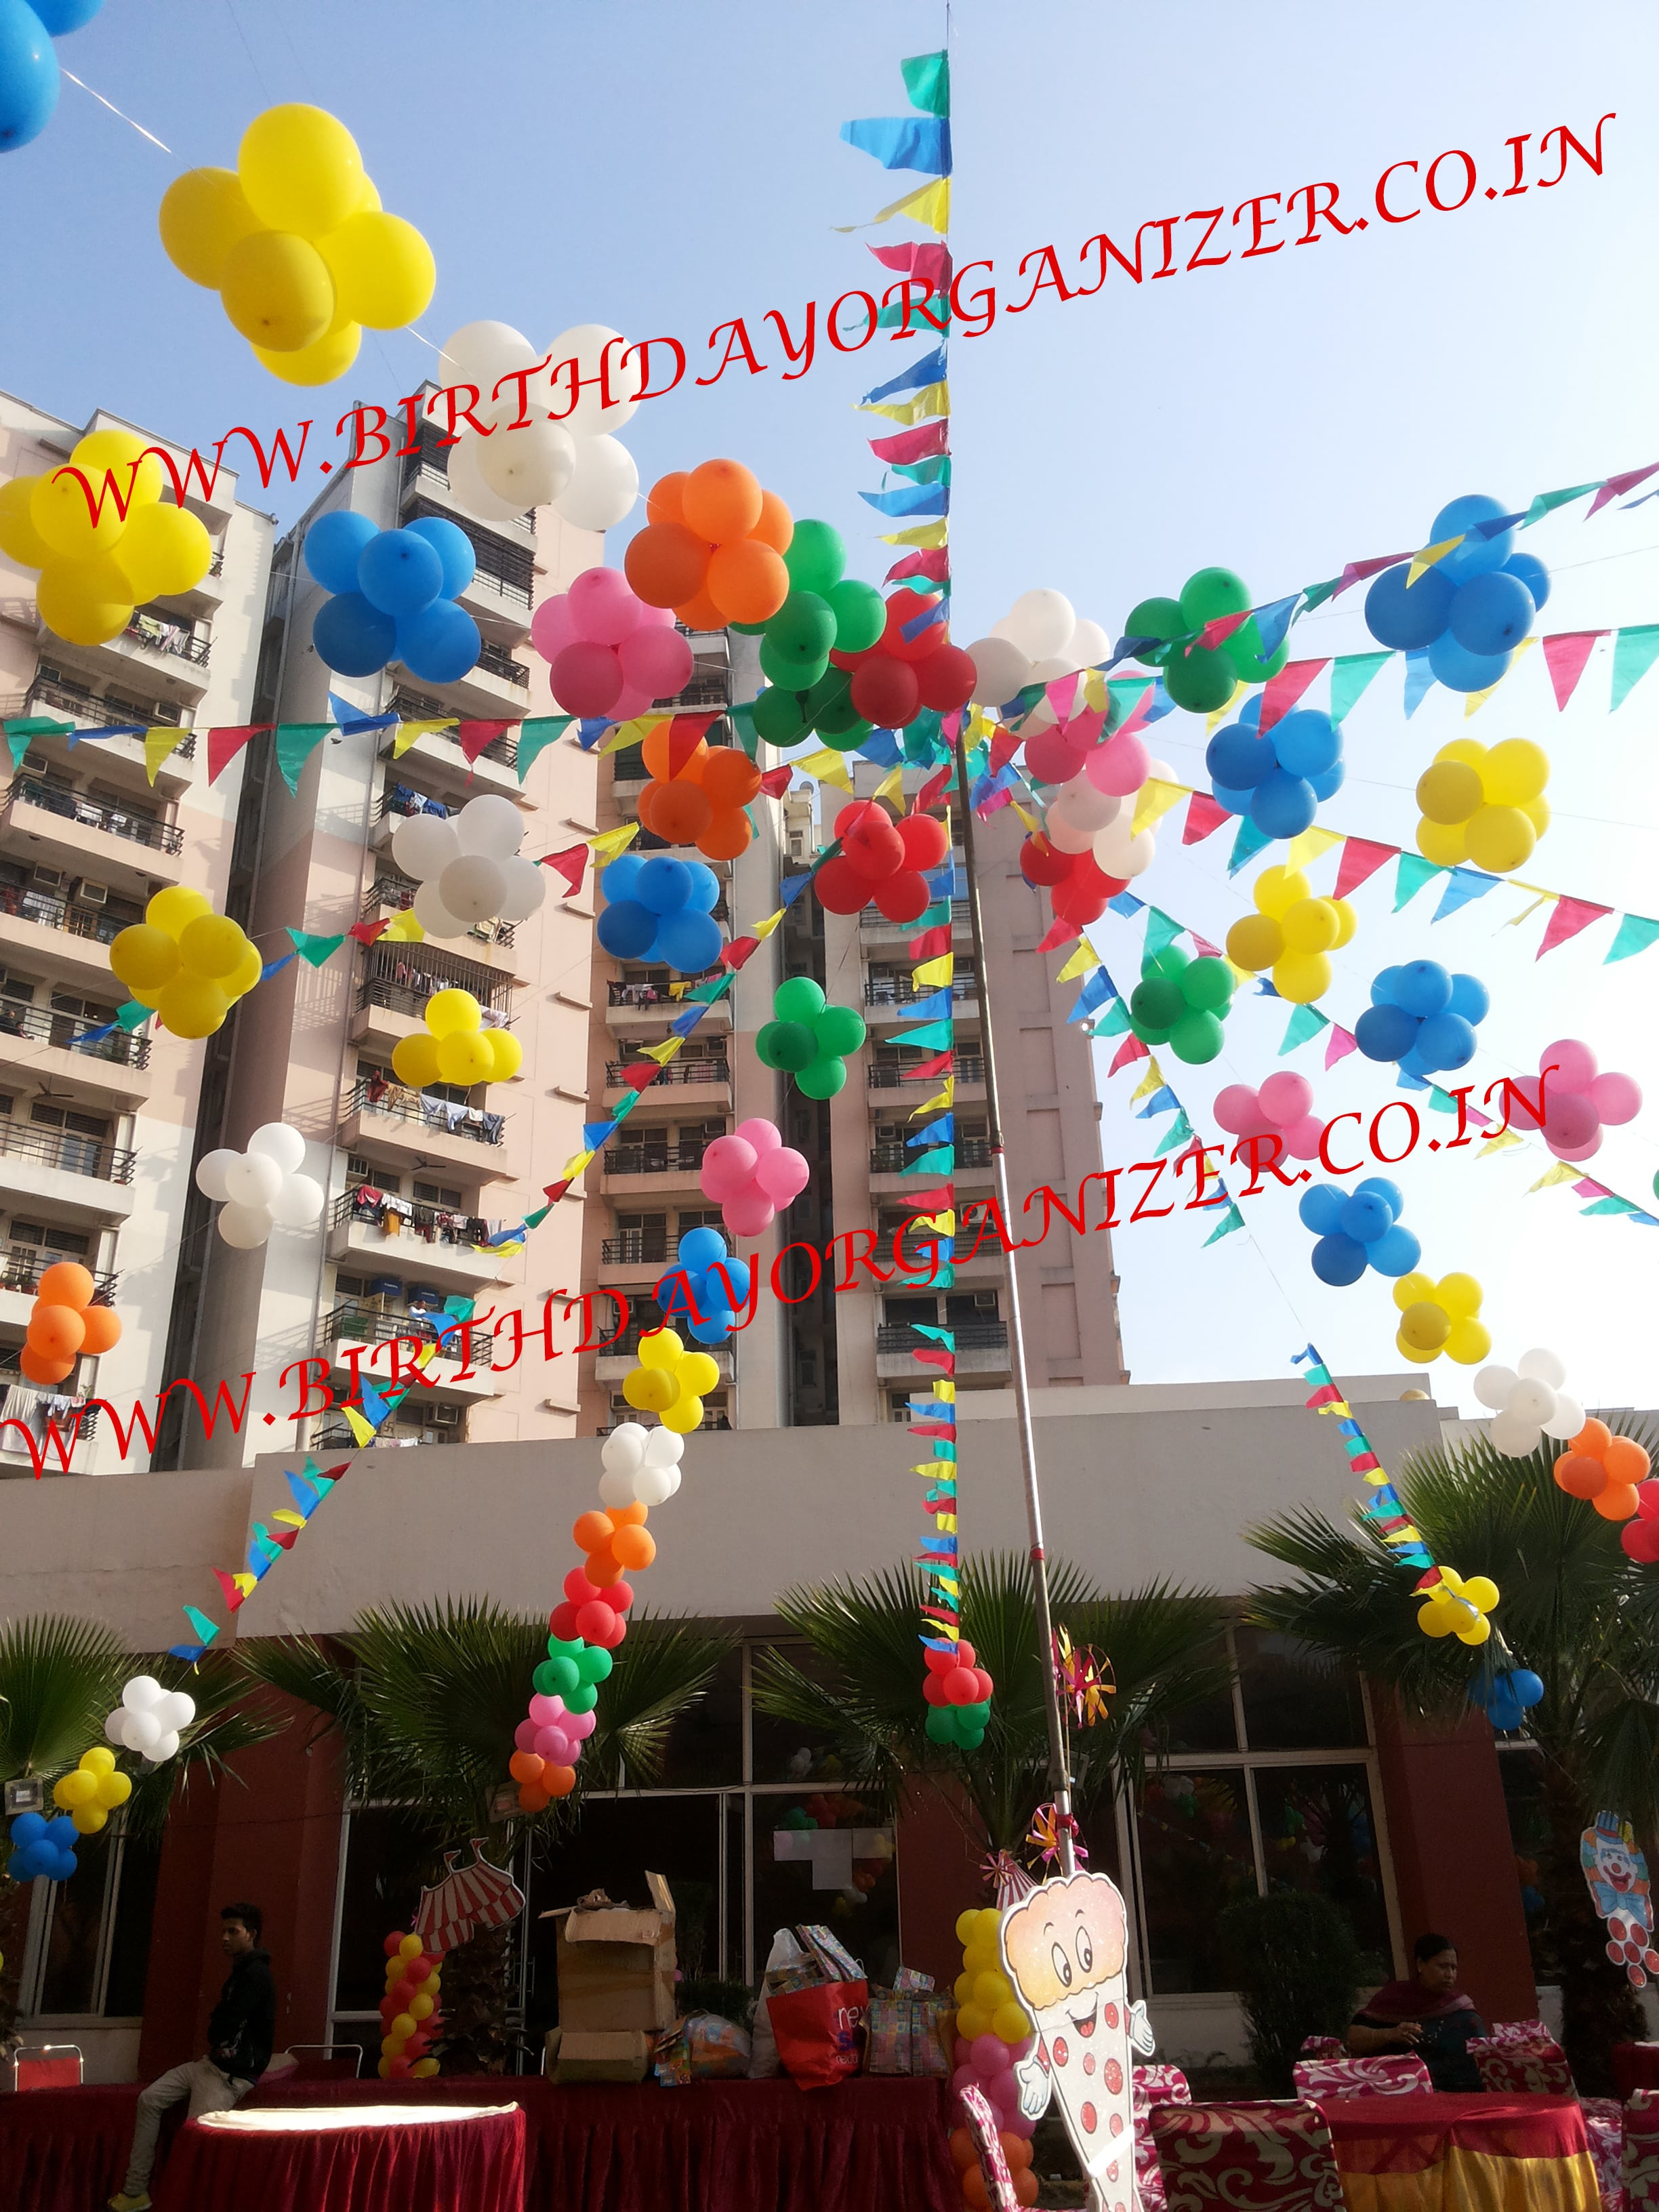 balloon decoration ideas at home in delhi ncr, balloon decoration ideas in gurgaon, balloon decoration planner in noida delhi ncr gurgaon, balloon decoration birthday organizer in noida delhi ncr gurgaon